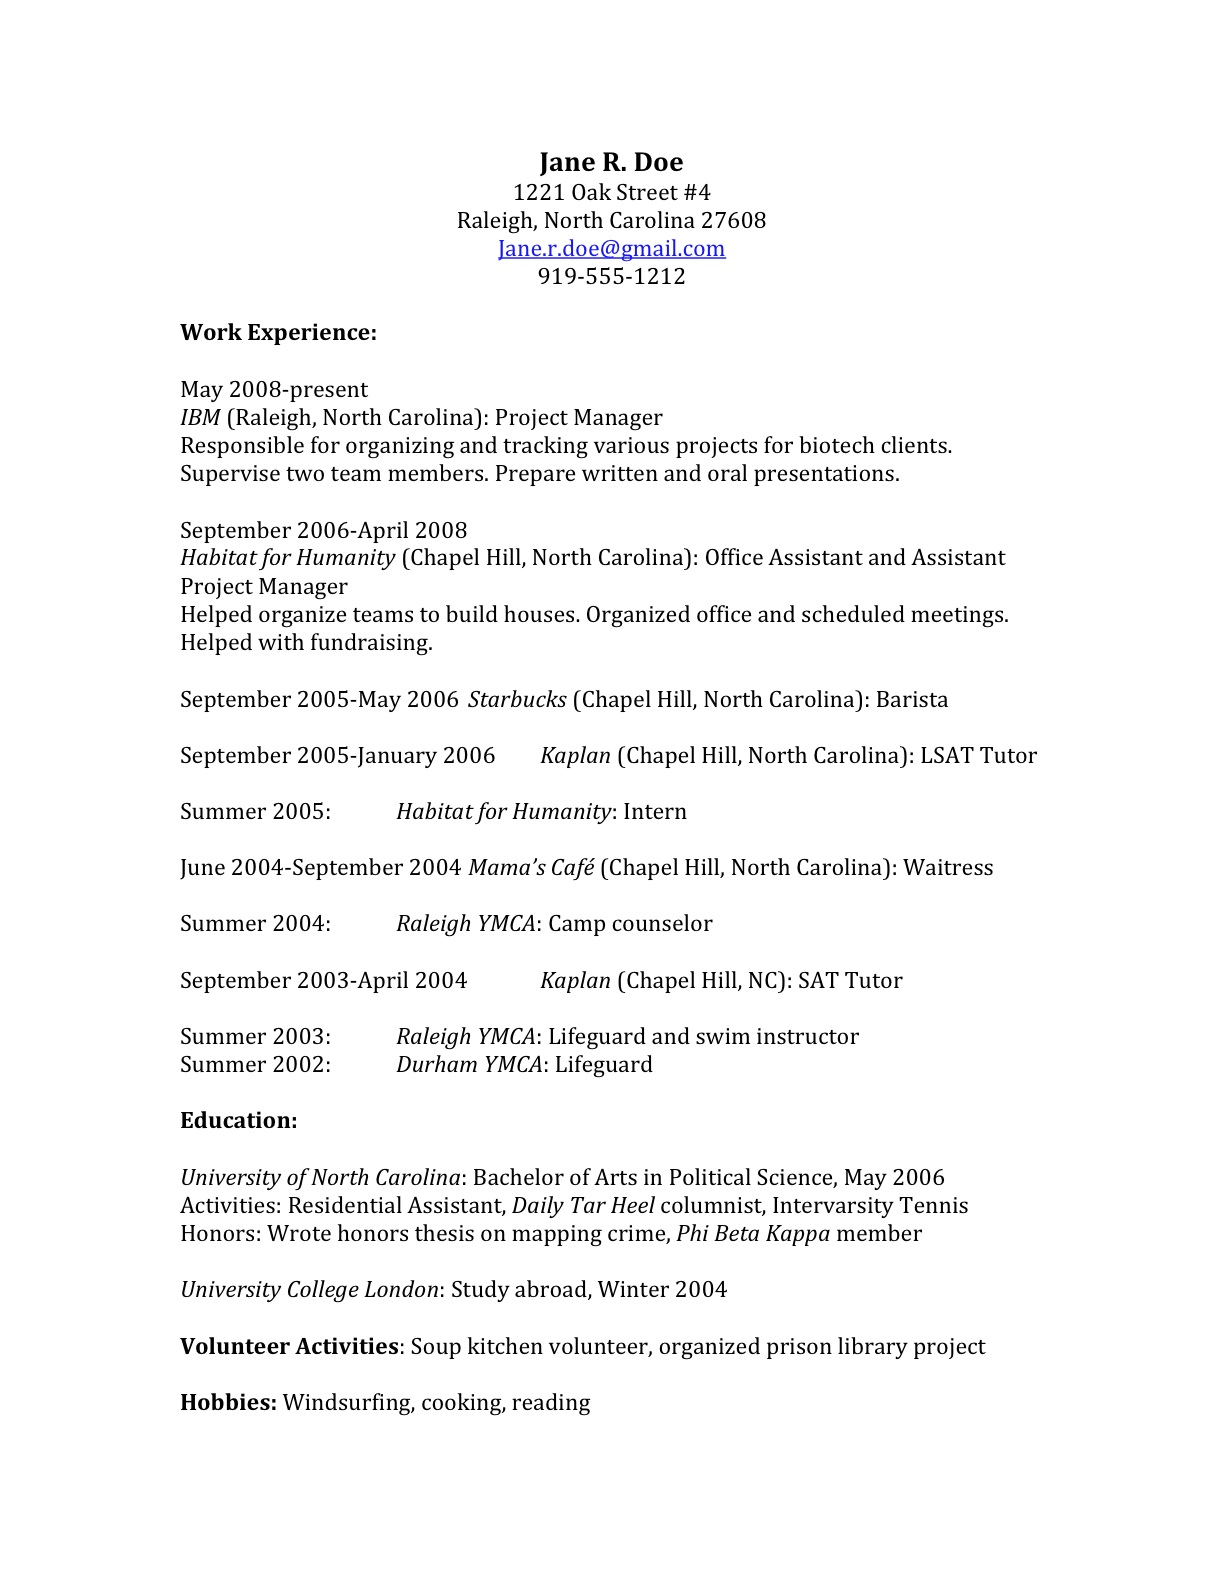 examples resumes resume sample for best farmer resume example examples resumes resume sample for how craft law school application that gets you sample jane doe